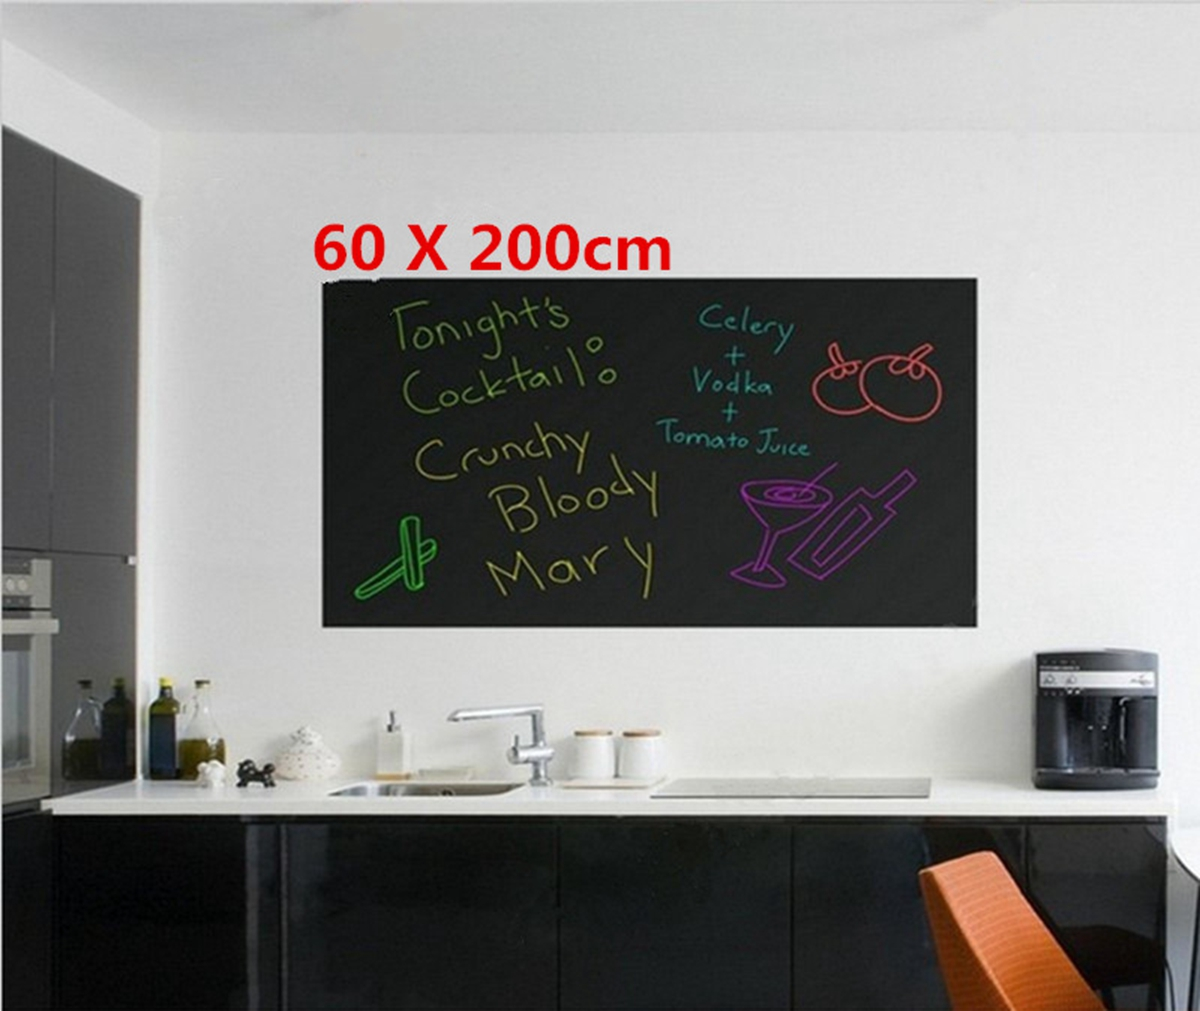 1Pcs 200CMX60CM Blackboard Sticker Self-Adhesive Wall Sticker Wall Paper Chalkboard Contact Paper For School ... by